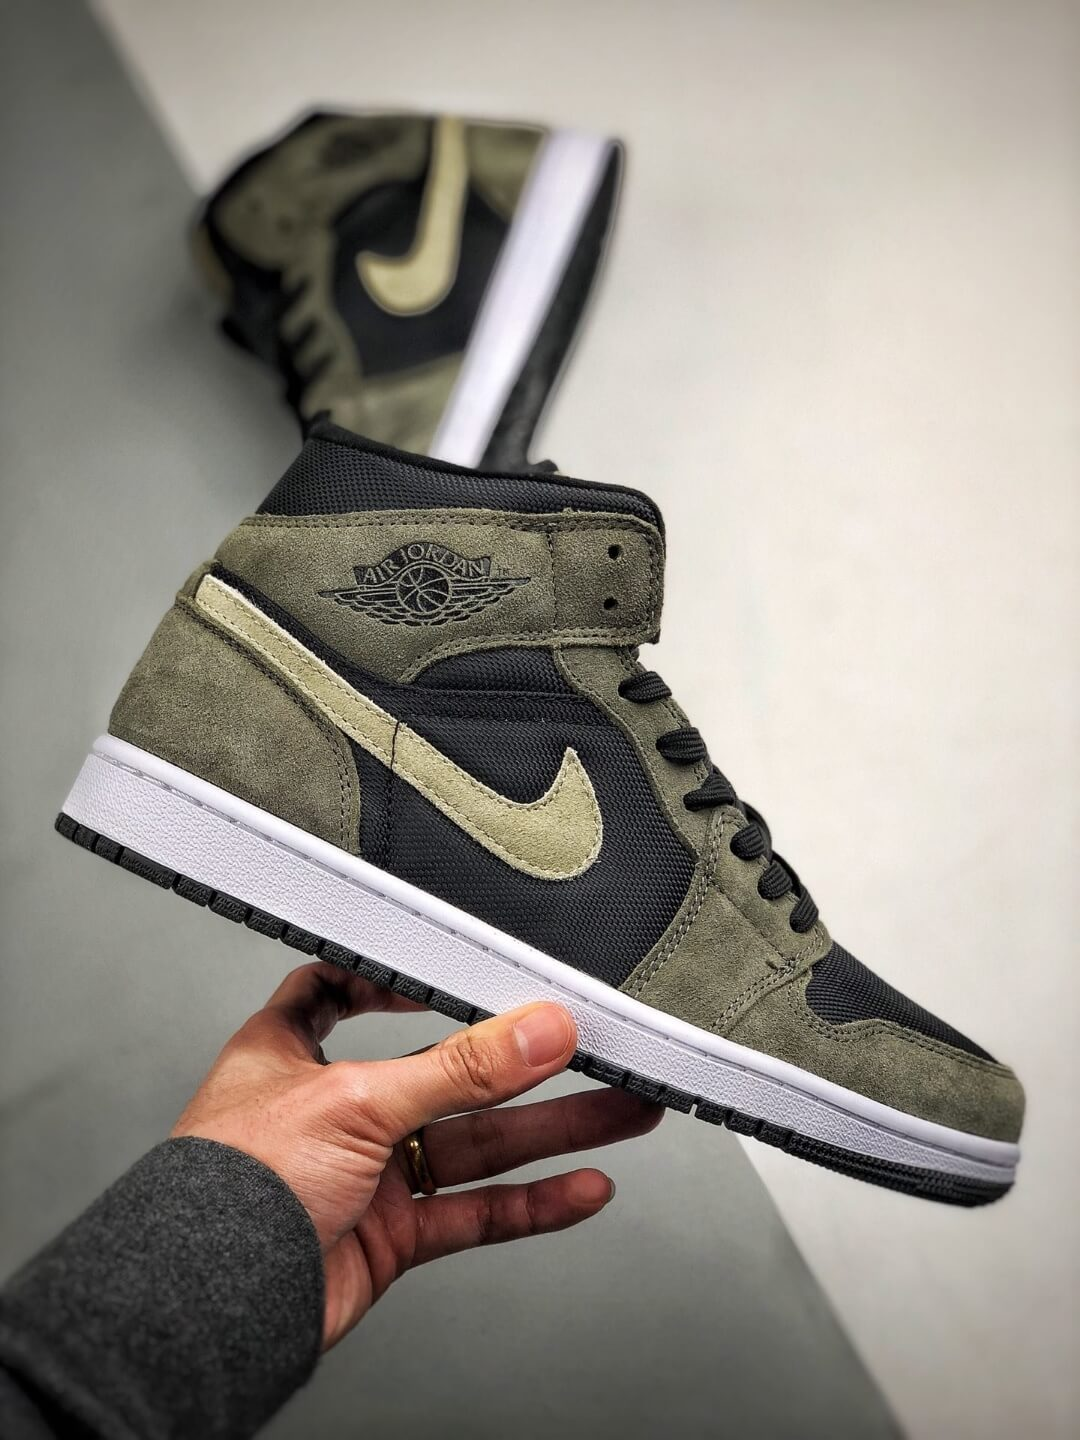 The Nike Wmns Air Jordan 1 Mid Olive Black Mesh Underlay Olive Tan Suede Overlay Repshoes 02